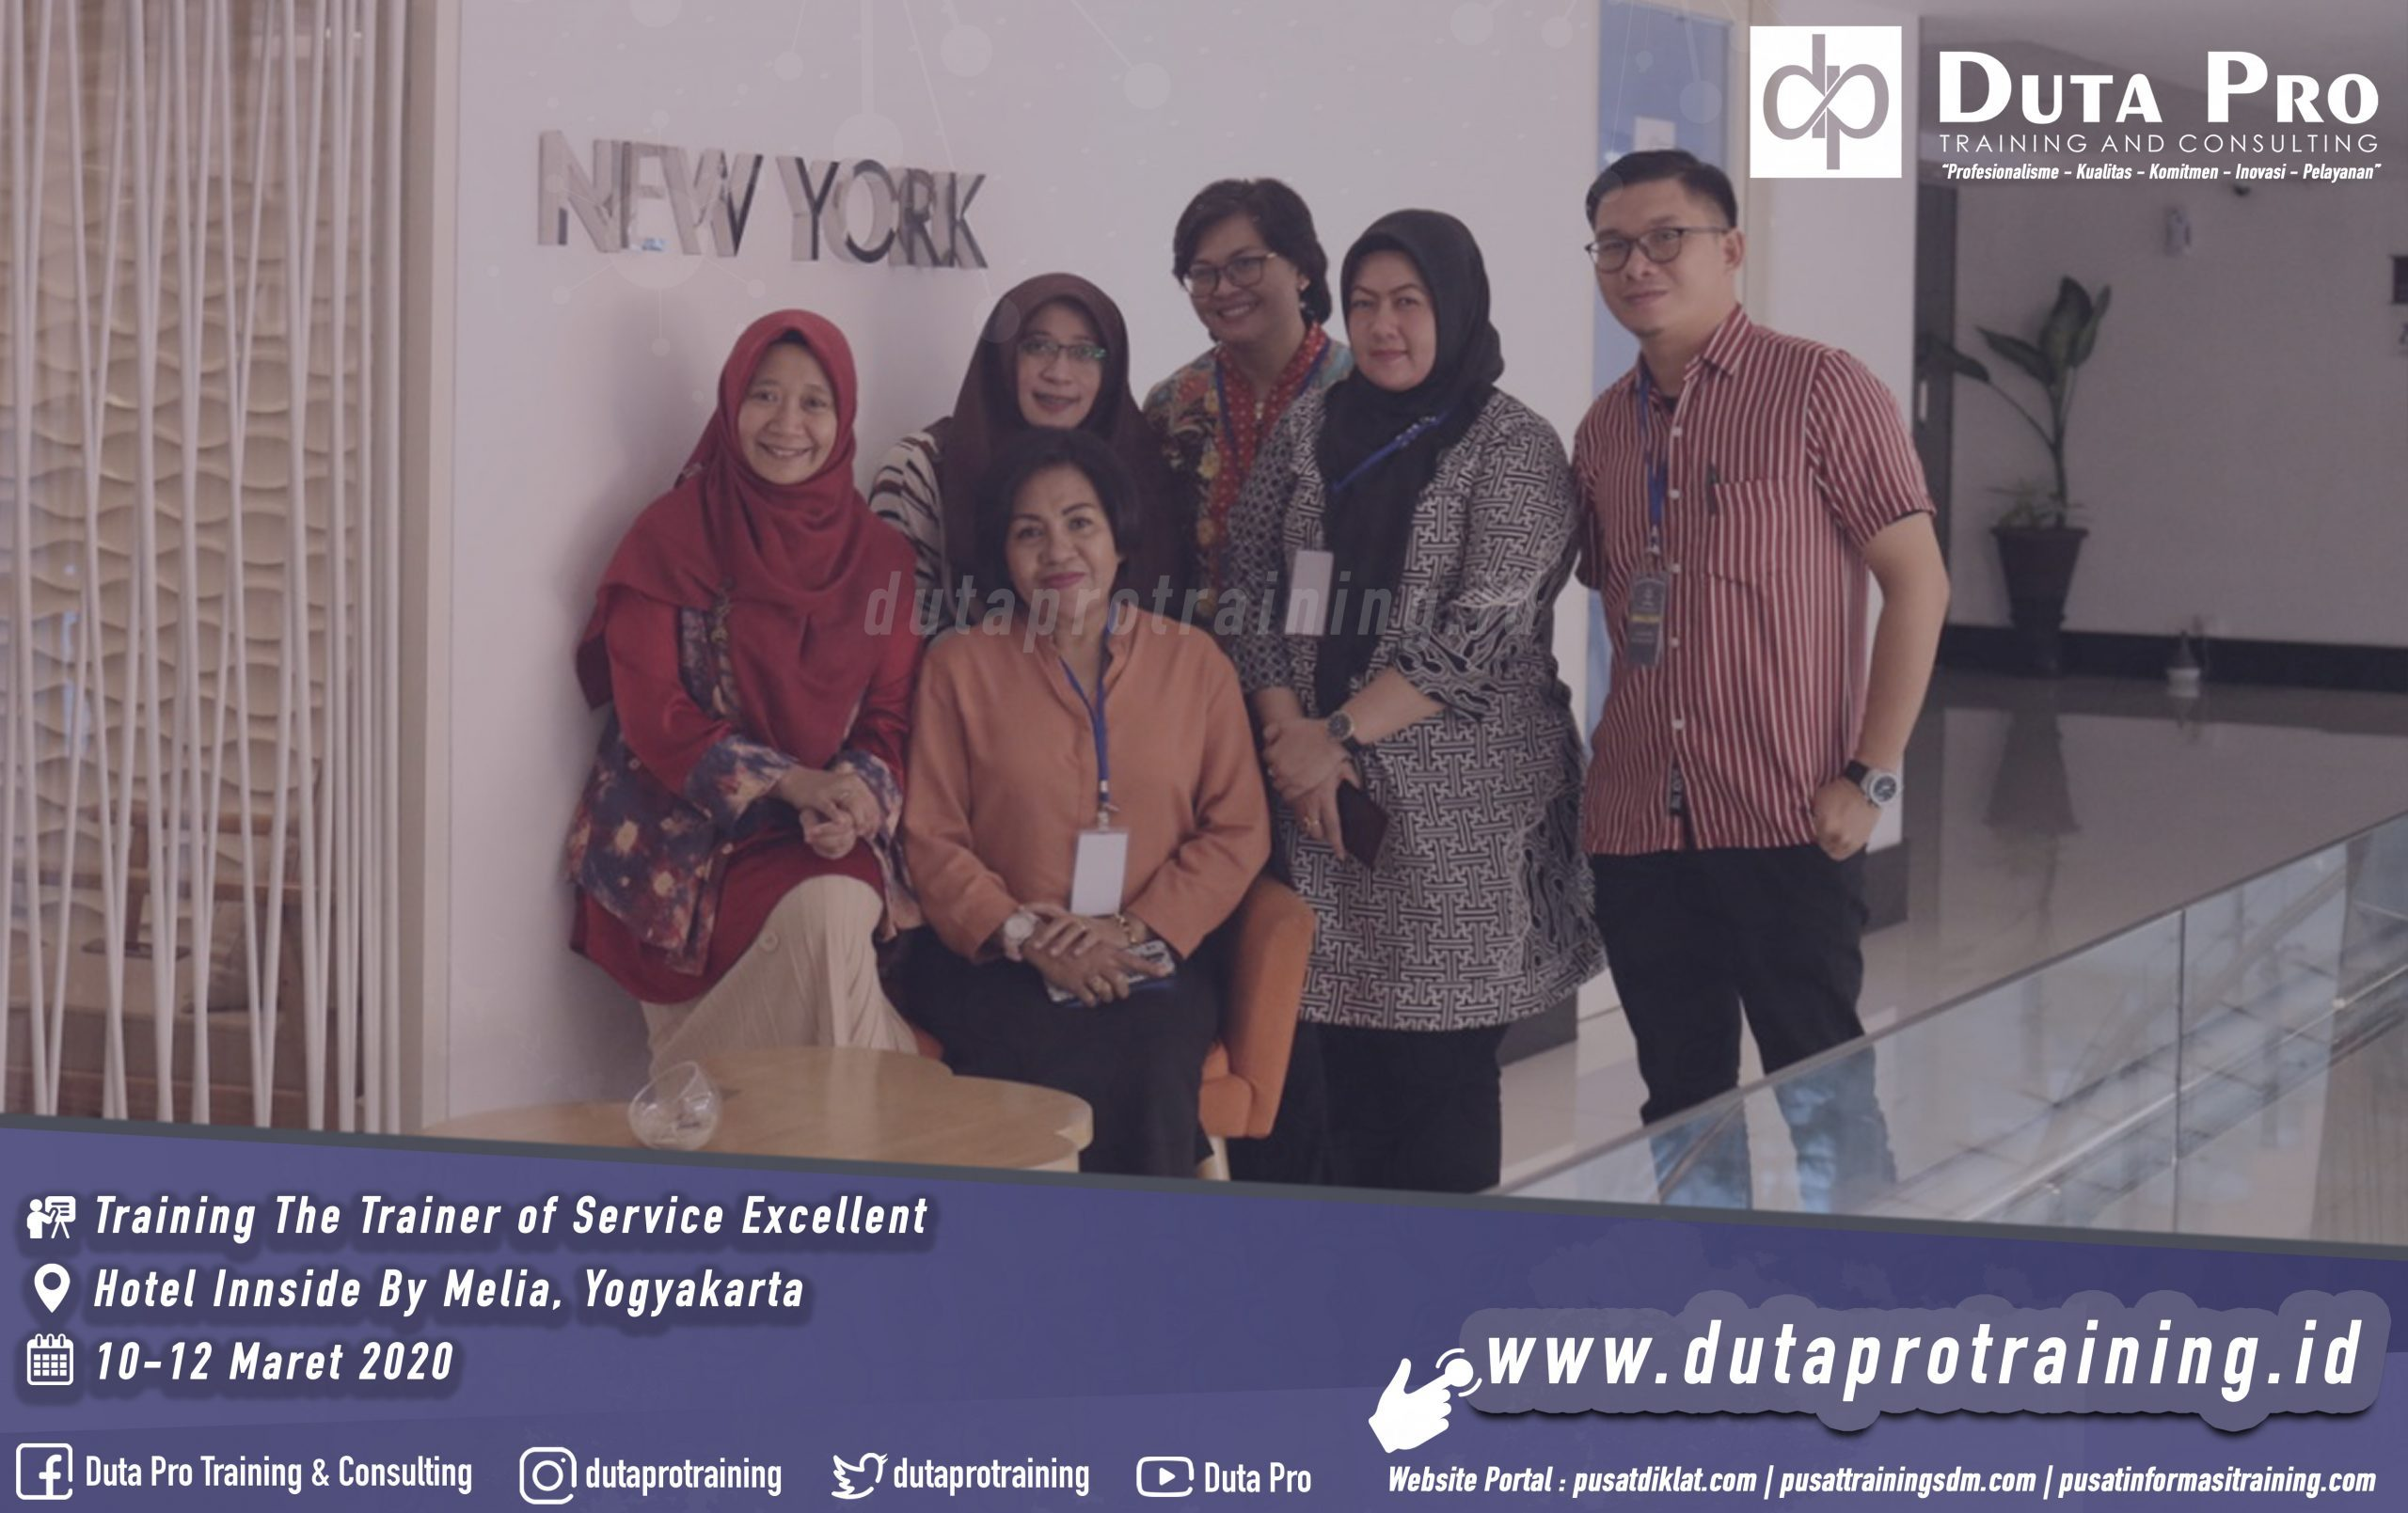 Training The Trainer of Service Excellent Hotel jogja duta pro. Galeri Website scaled 2559x1609 - Crisis Management